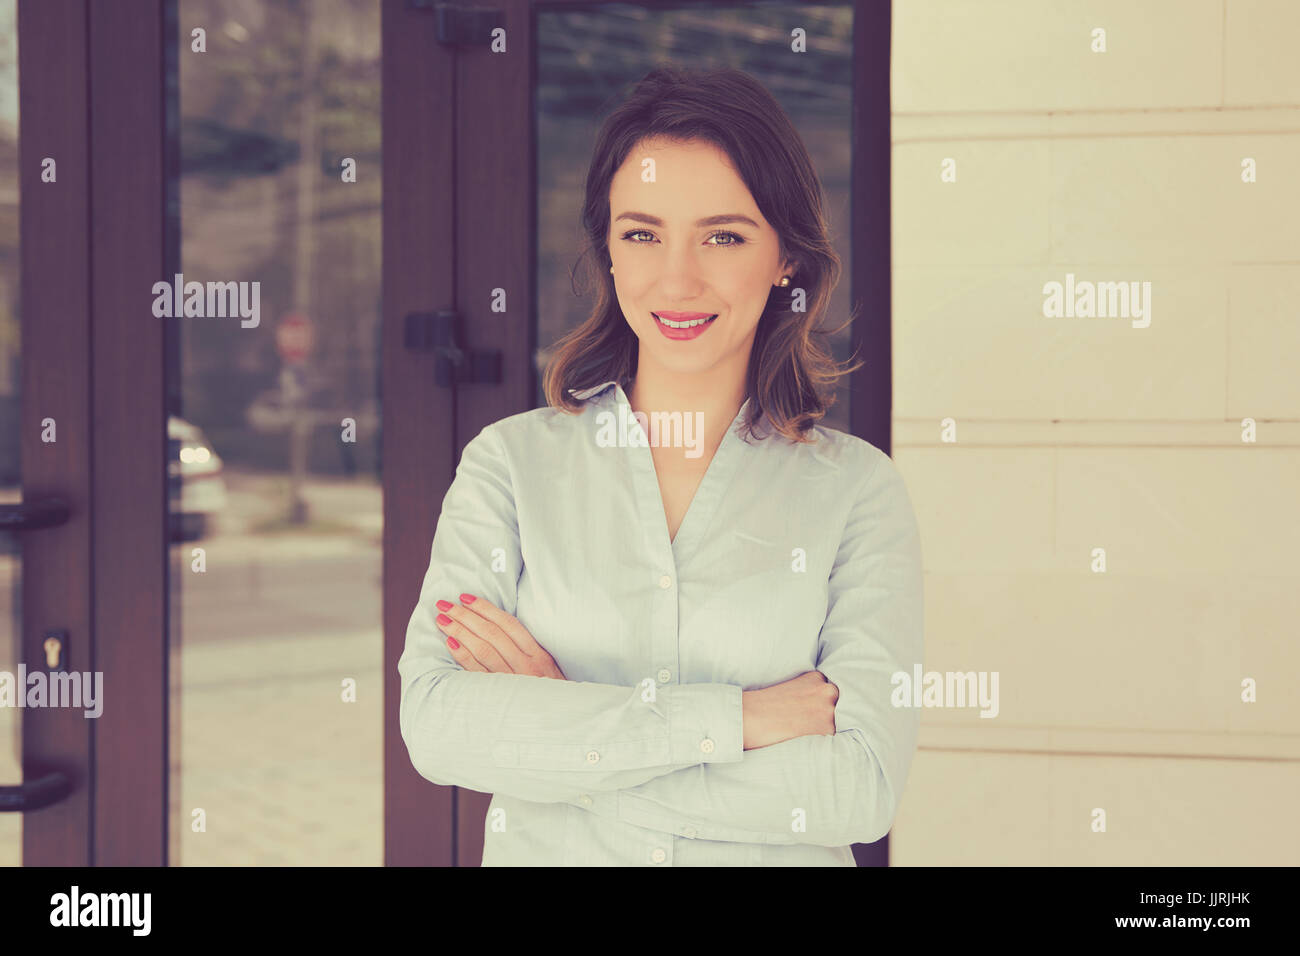 Femme de l'agent immobilier attrayant Photo Stock